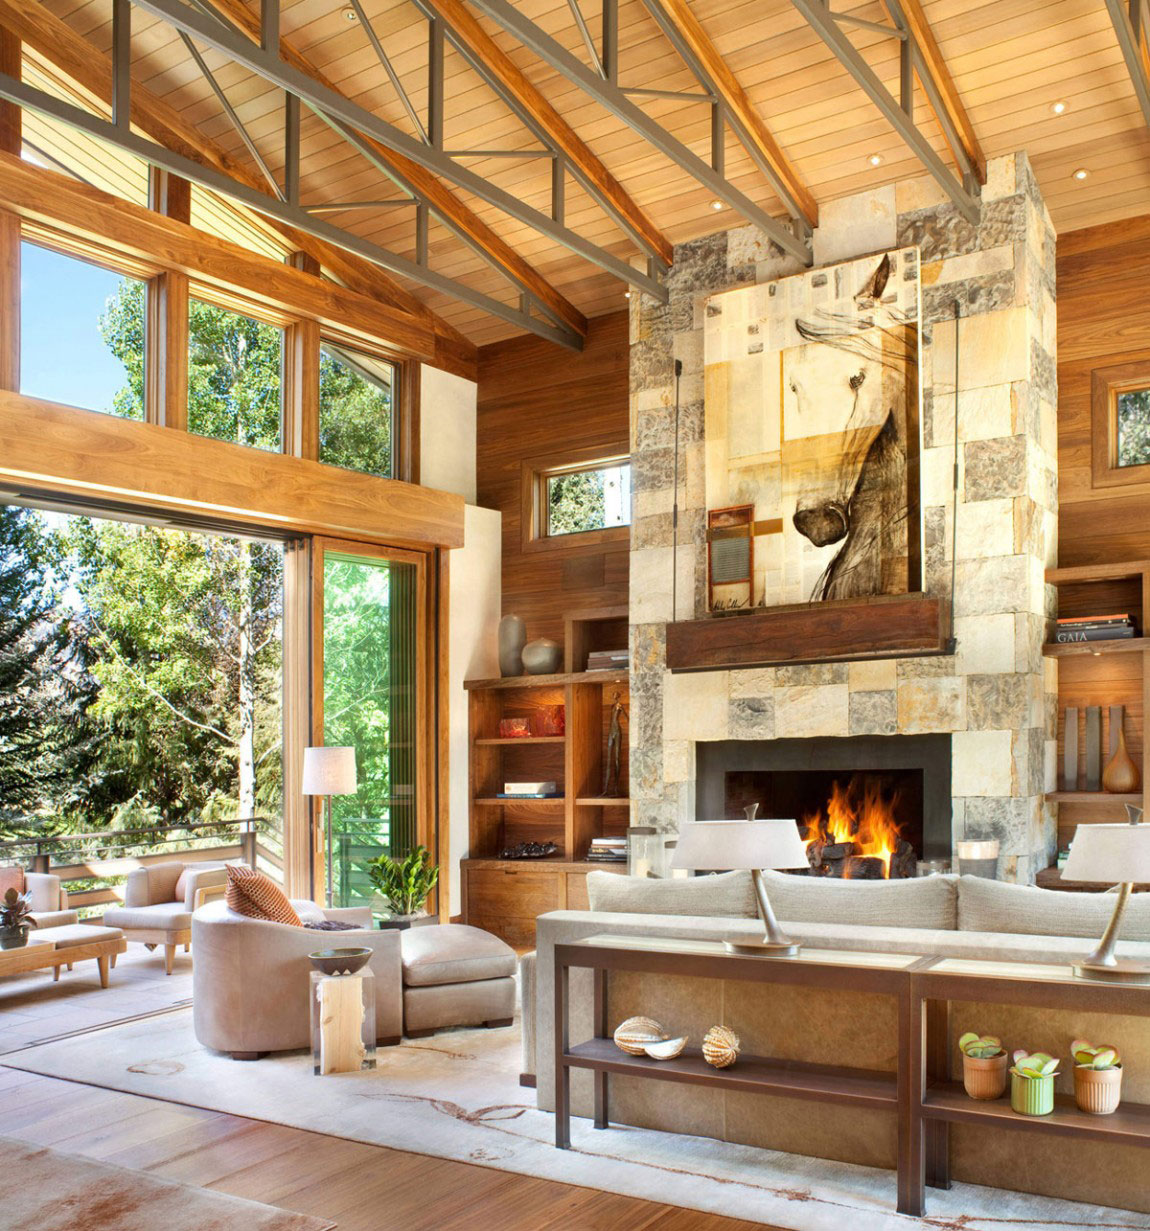 Magical Rustic Home Designed by Suman Architects-4 Magical Rustic Home Designed by Suman Architects